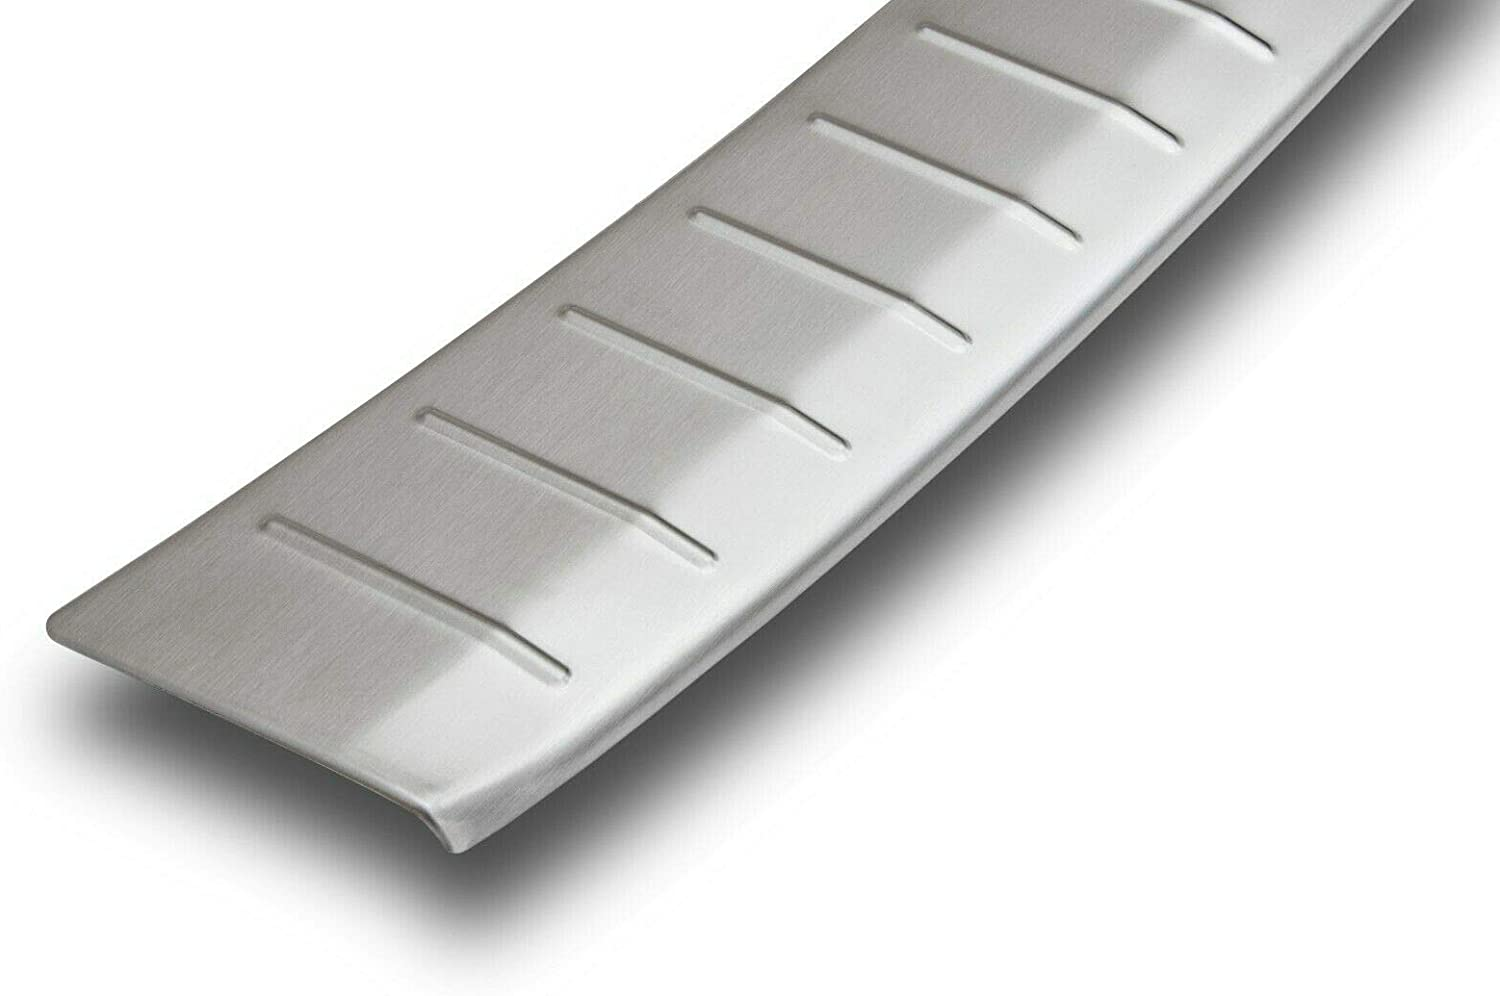 Large Year of Manufacture 2010-2018 Recambo CT-LKS-2581 Boot sill Protection Stainless Steel matt for VW Touareg II Type 7P